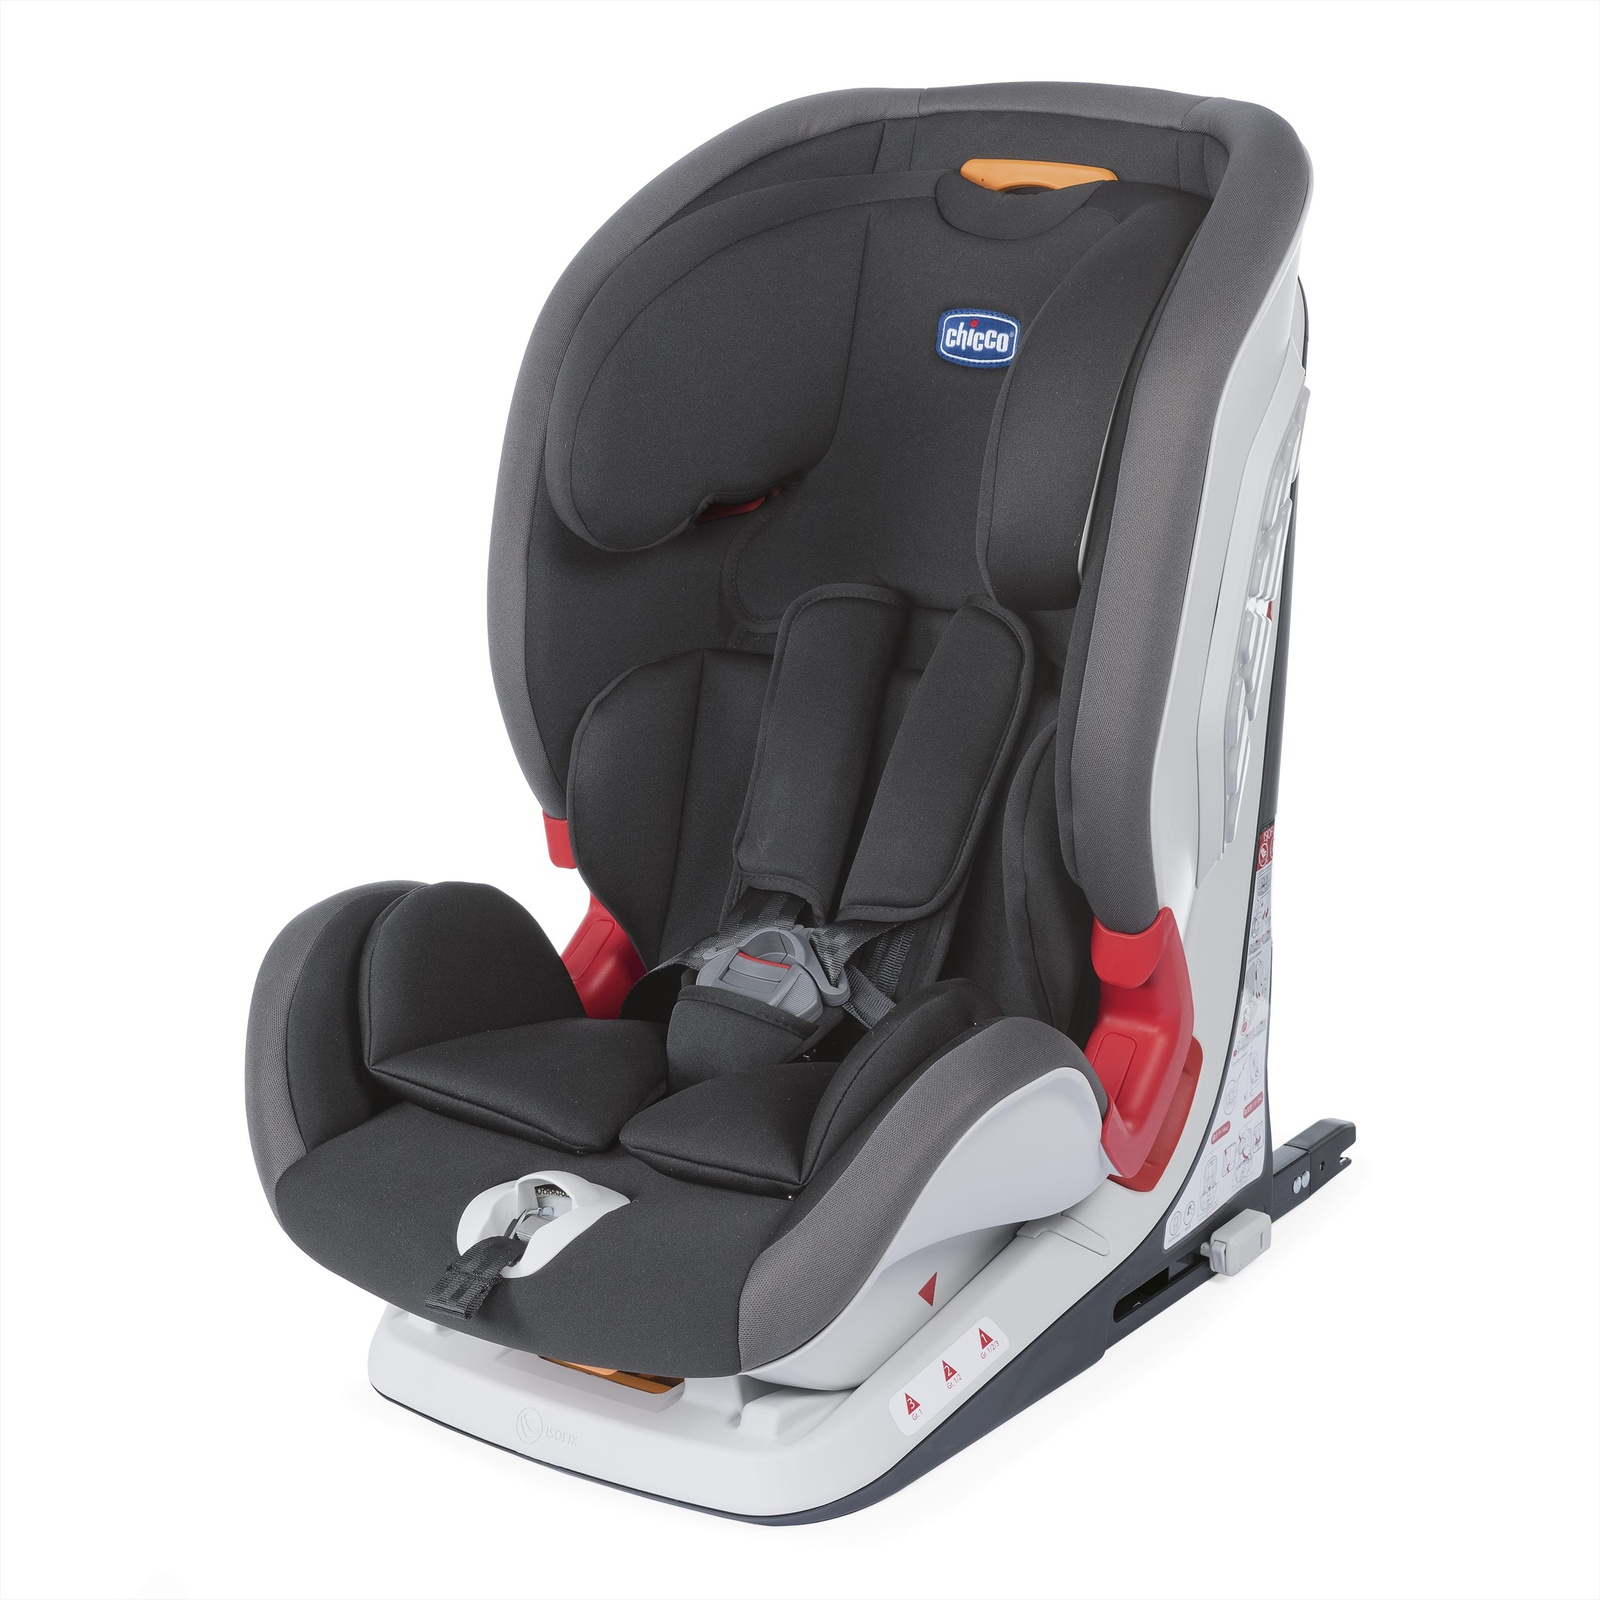 Автокресло Chicco Youniverse Fix, Jet Black автокресло chicco oasys 1 isofix fire